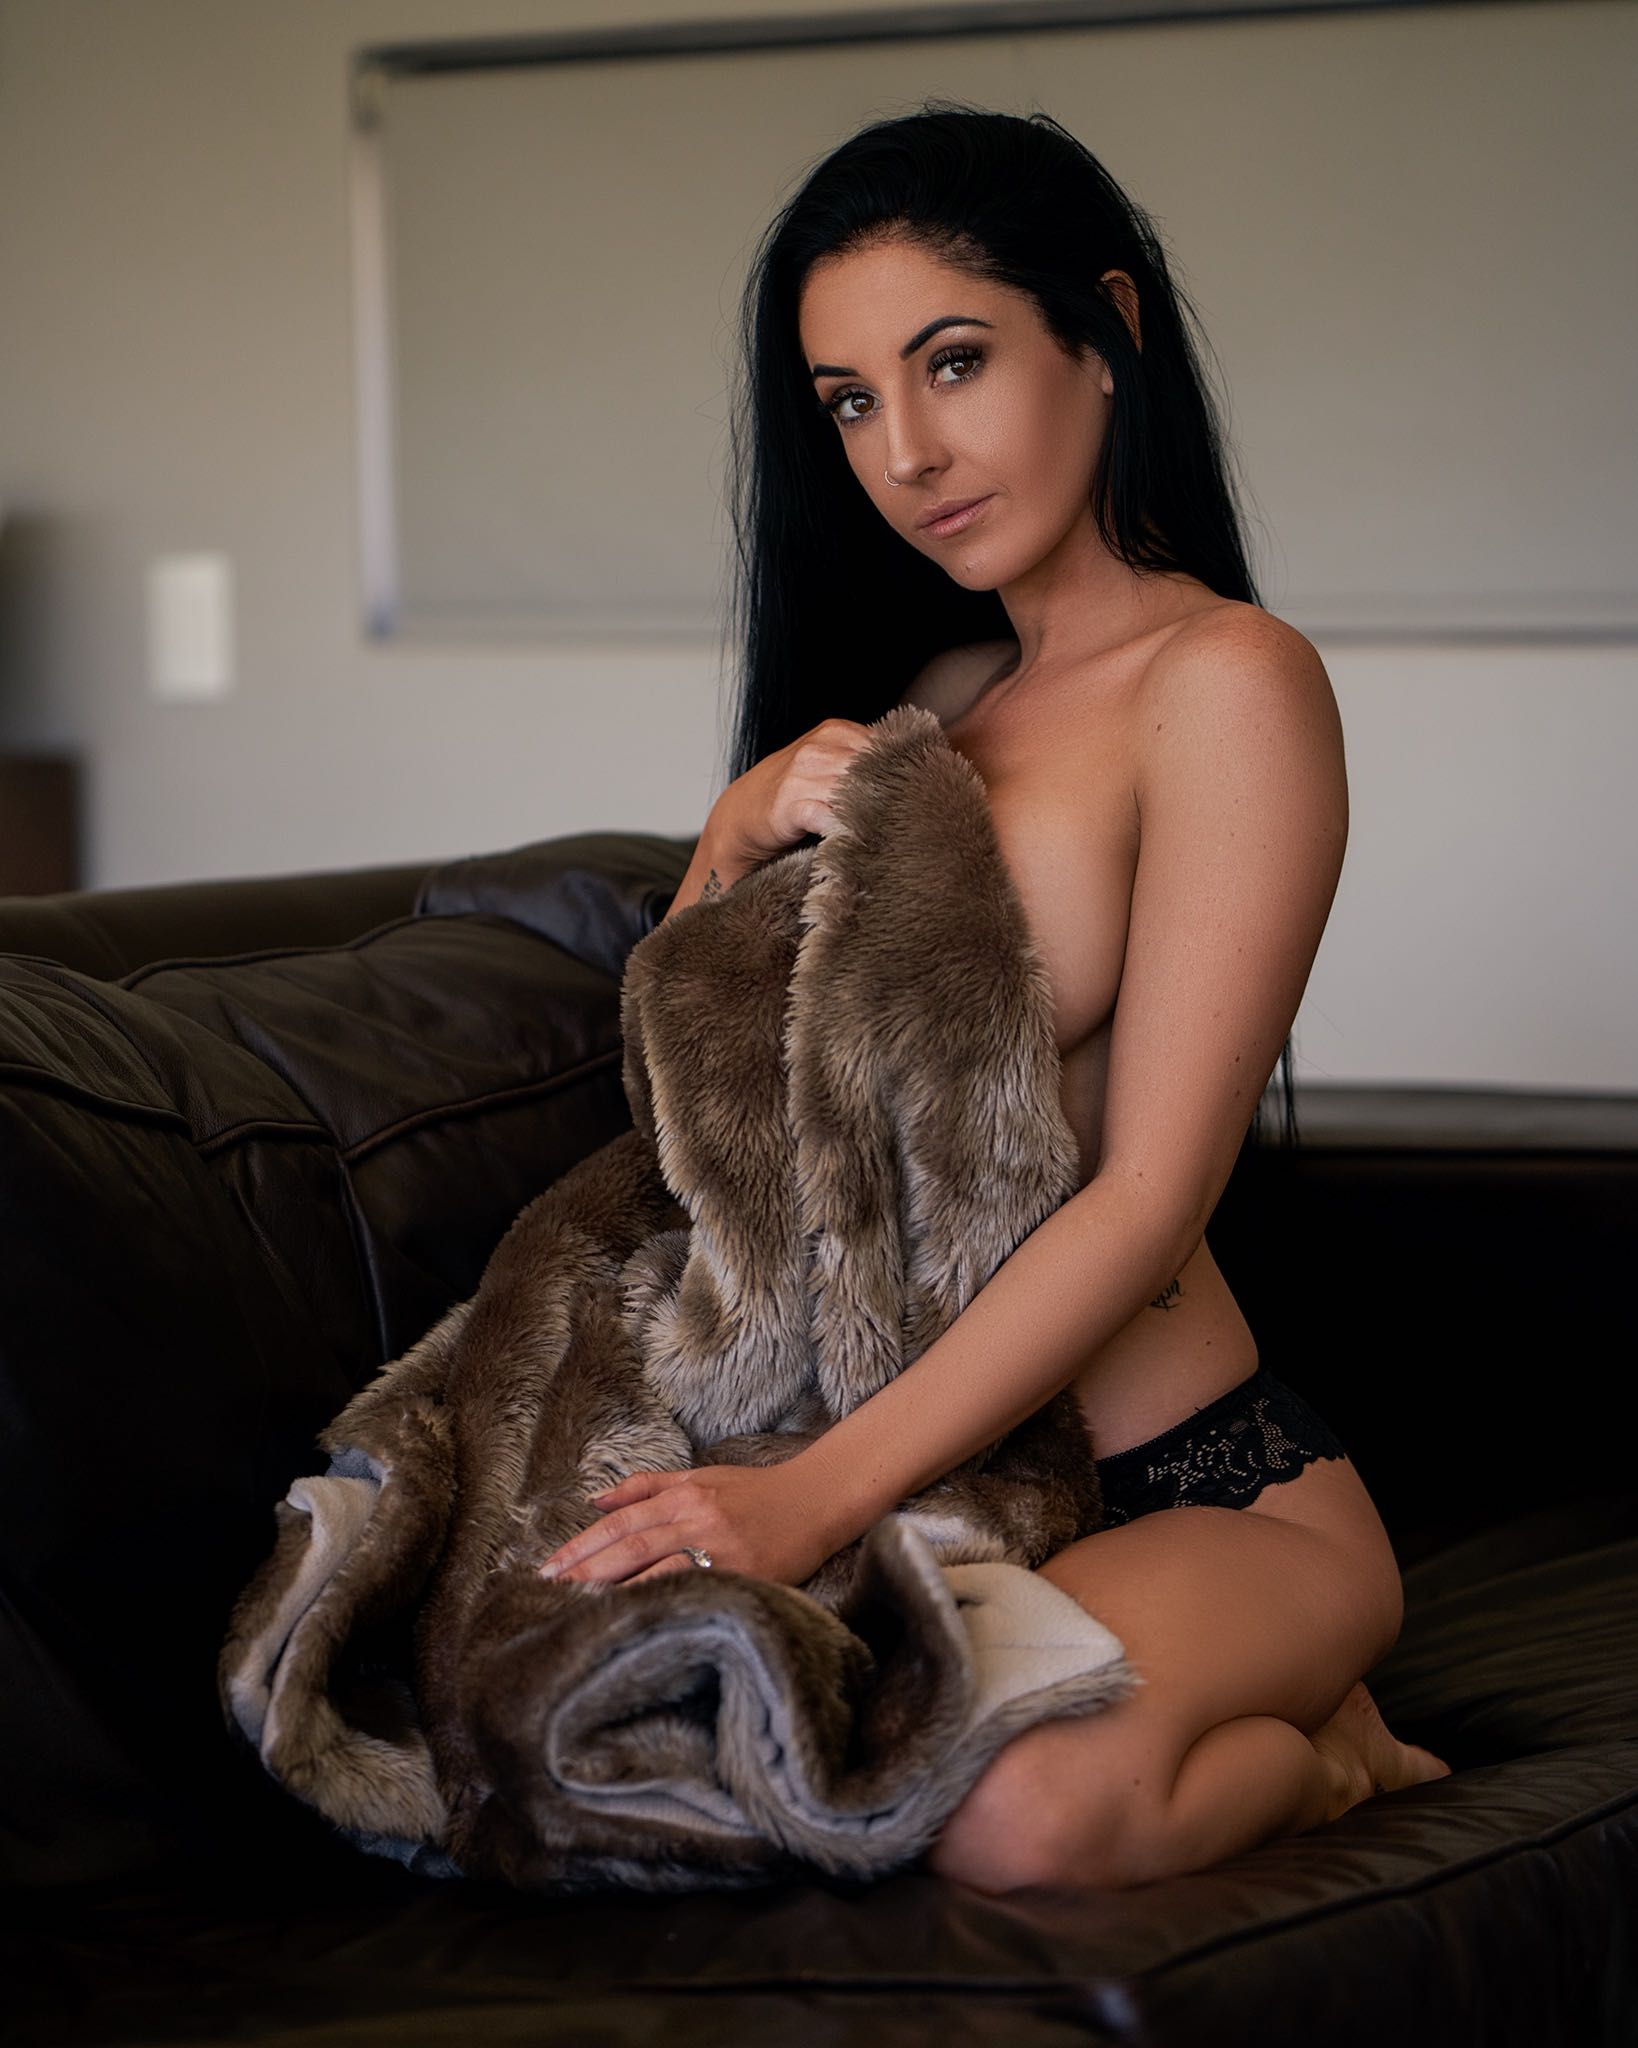 Meet Christelle du Plessis in our South African Babes feature